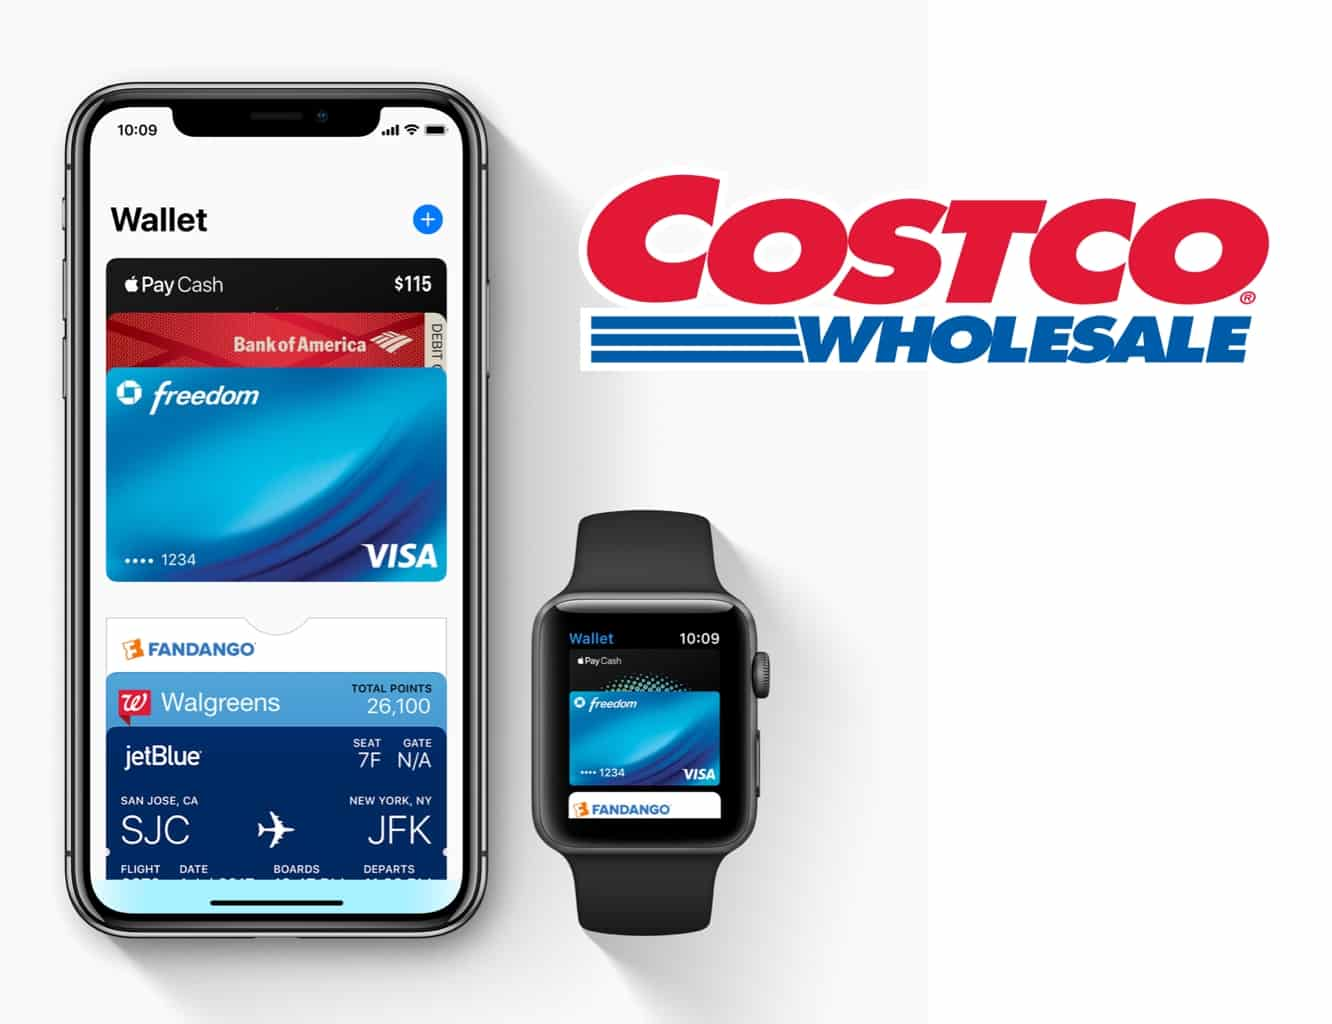 Costco now accepting Apple Pay at all U.S. Warehouse locations